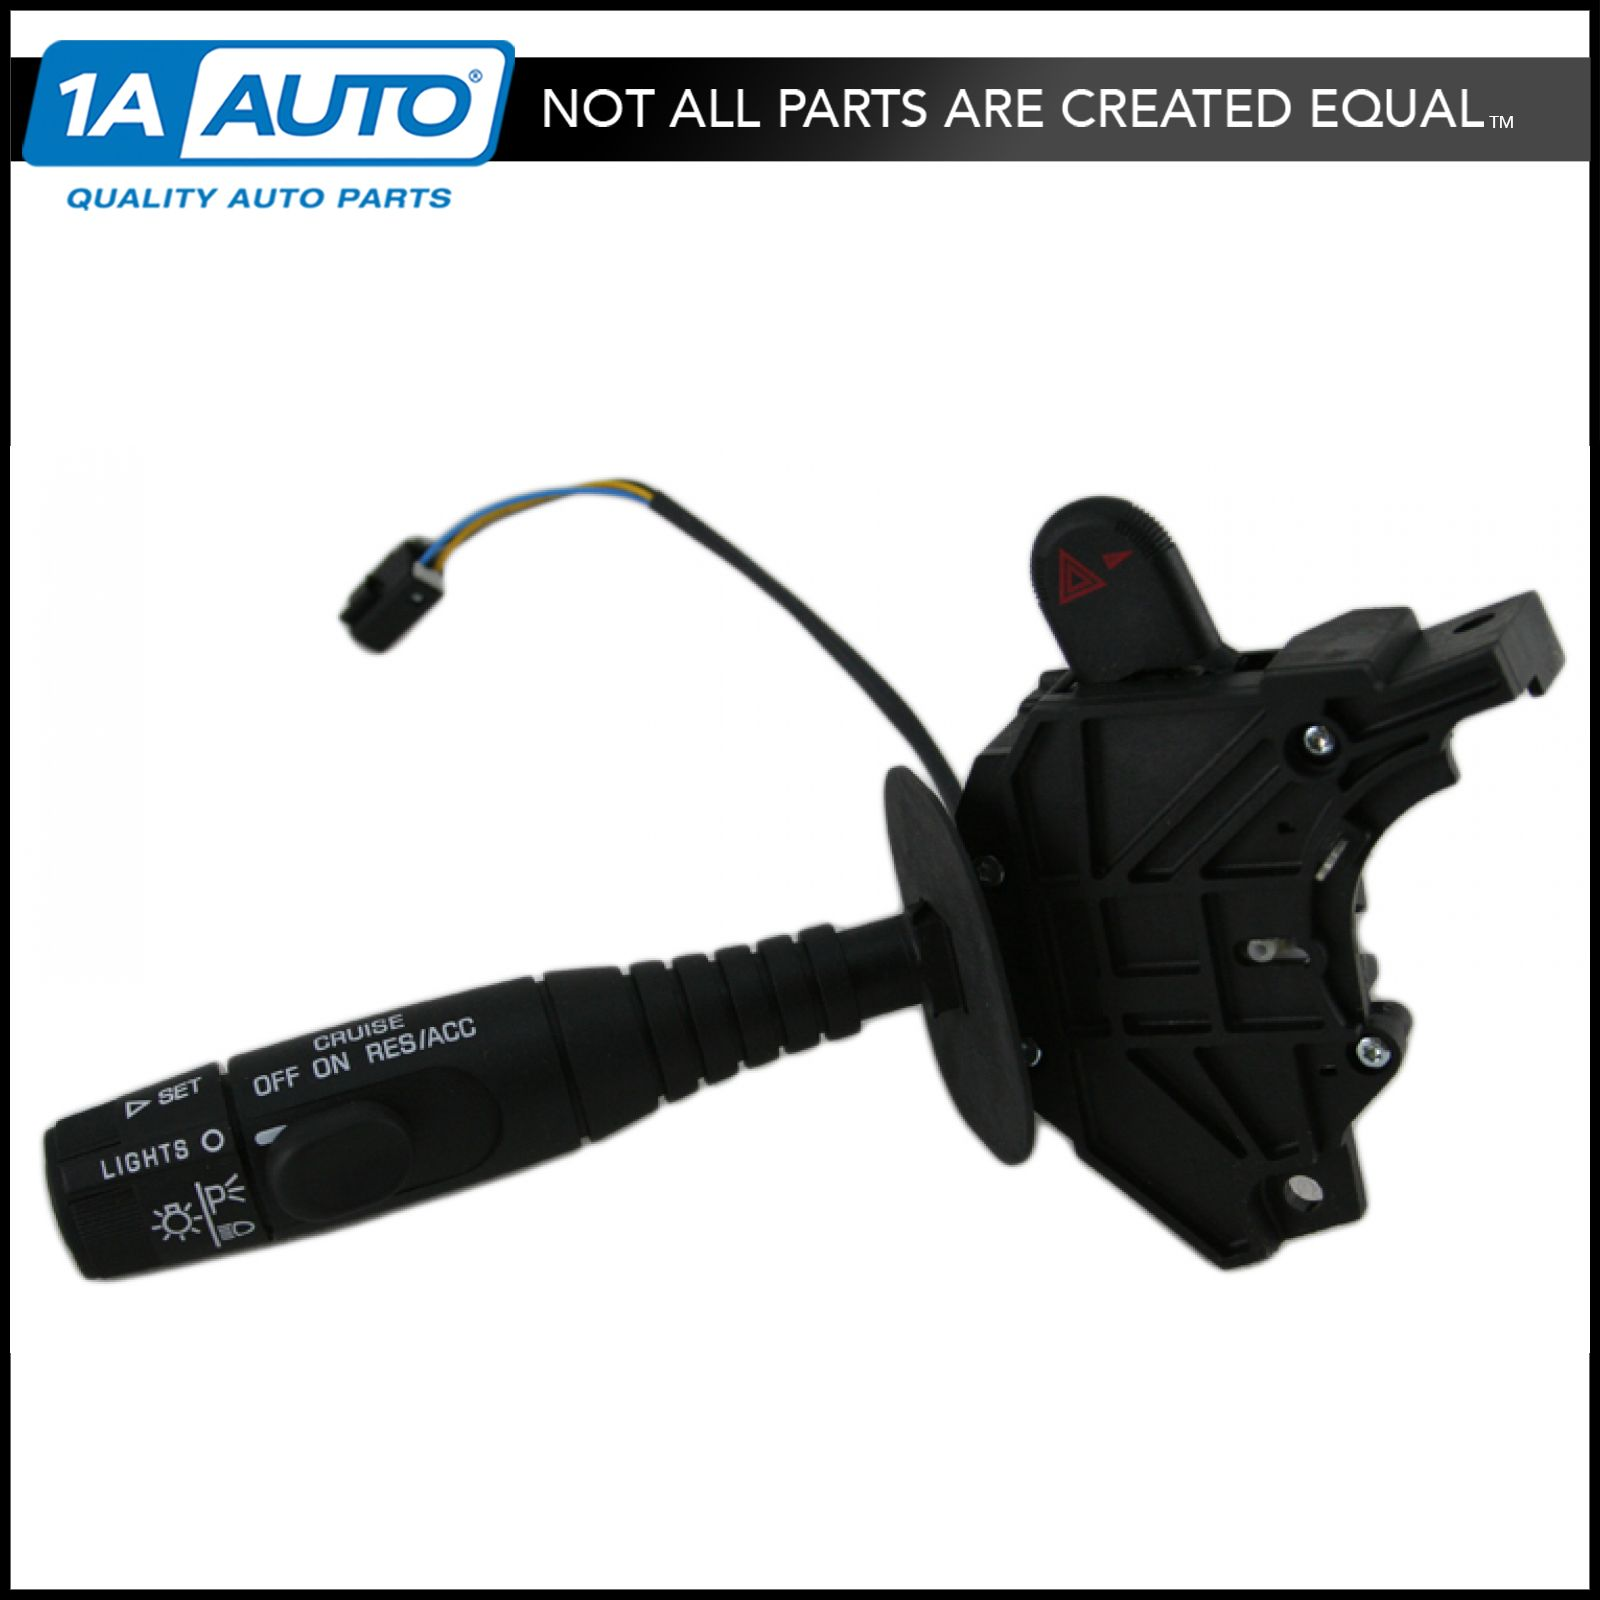 Does Cruisecontrol Wiper Control Switch : Headlight windshield wiper turn signal cruise control